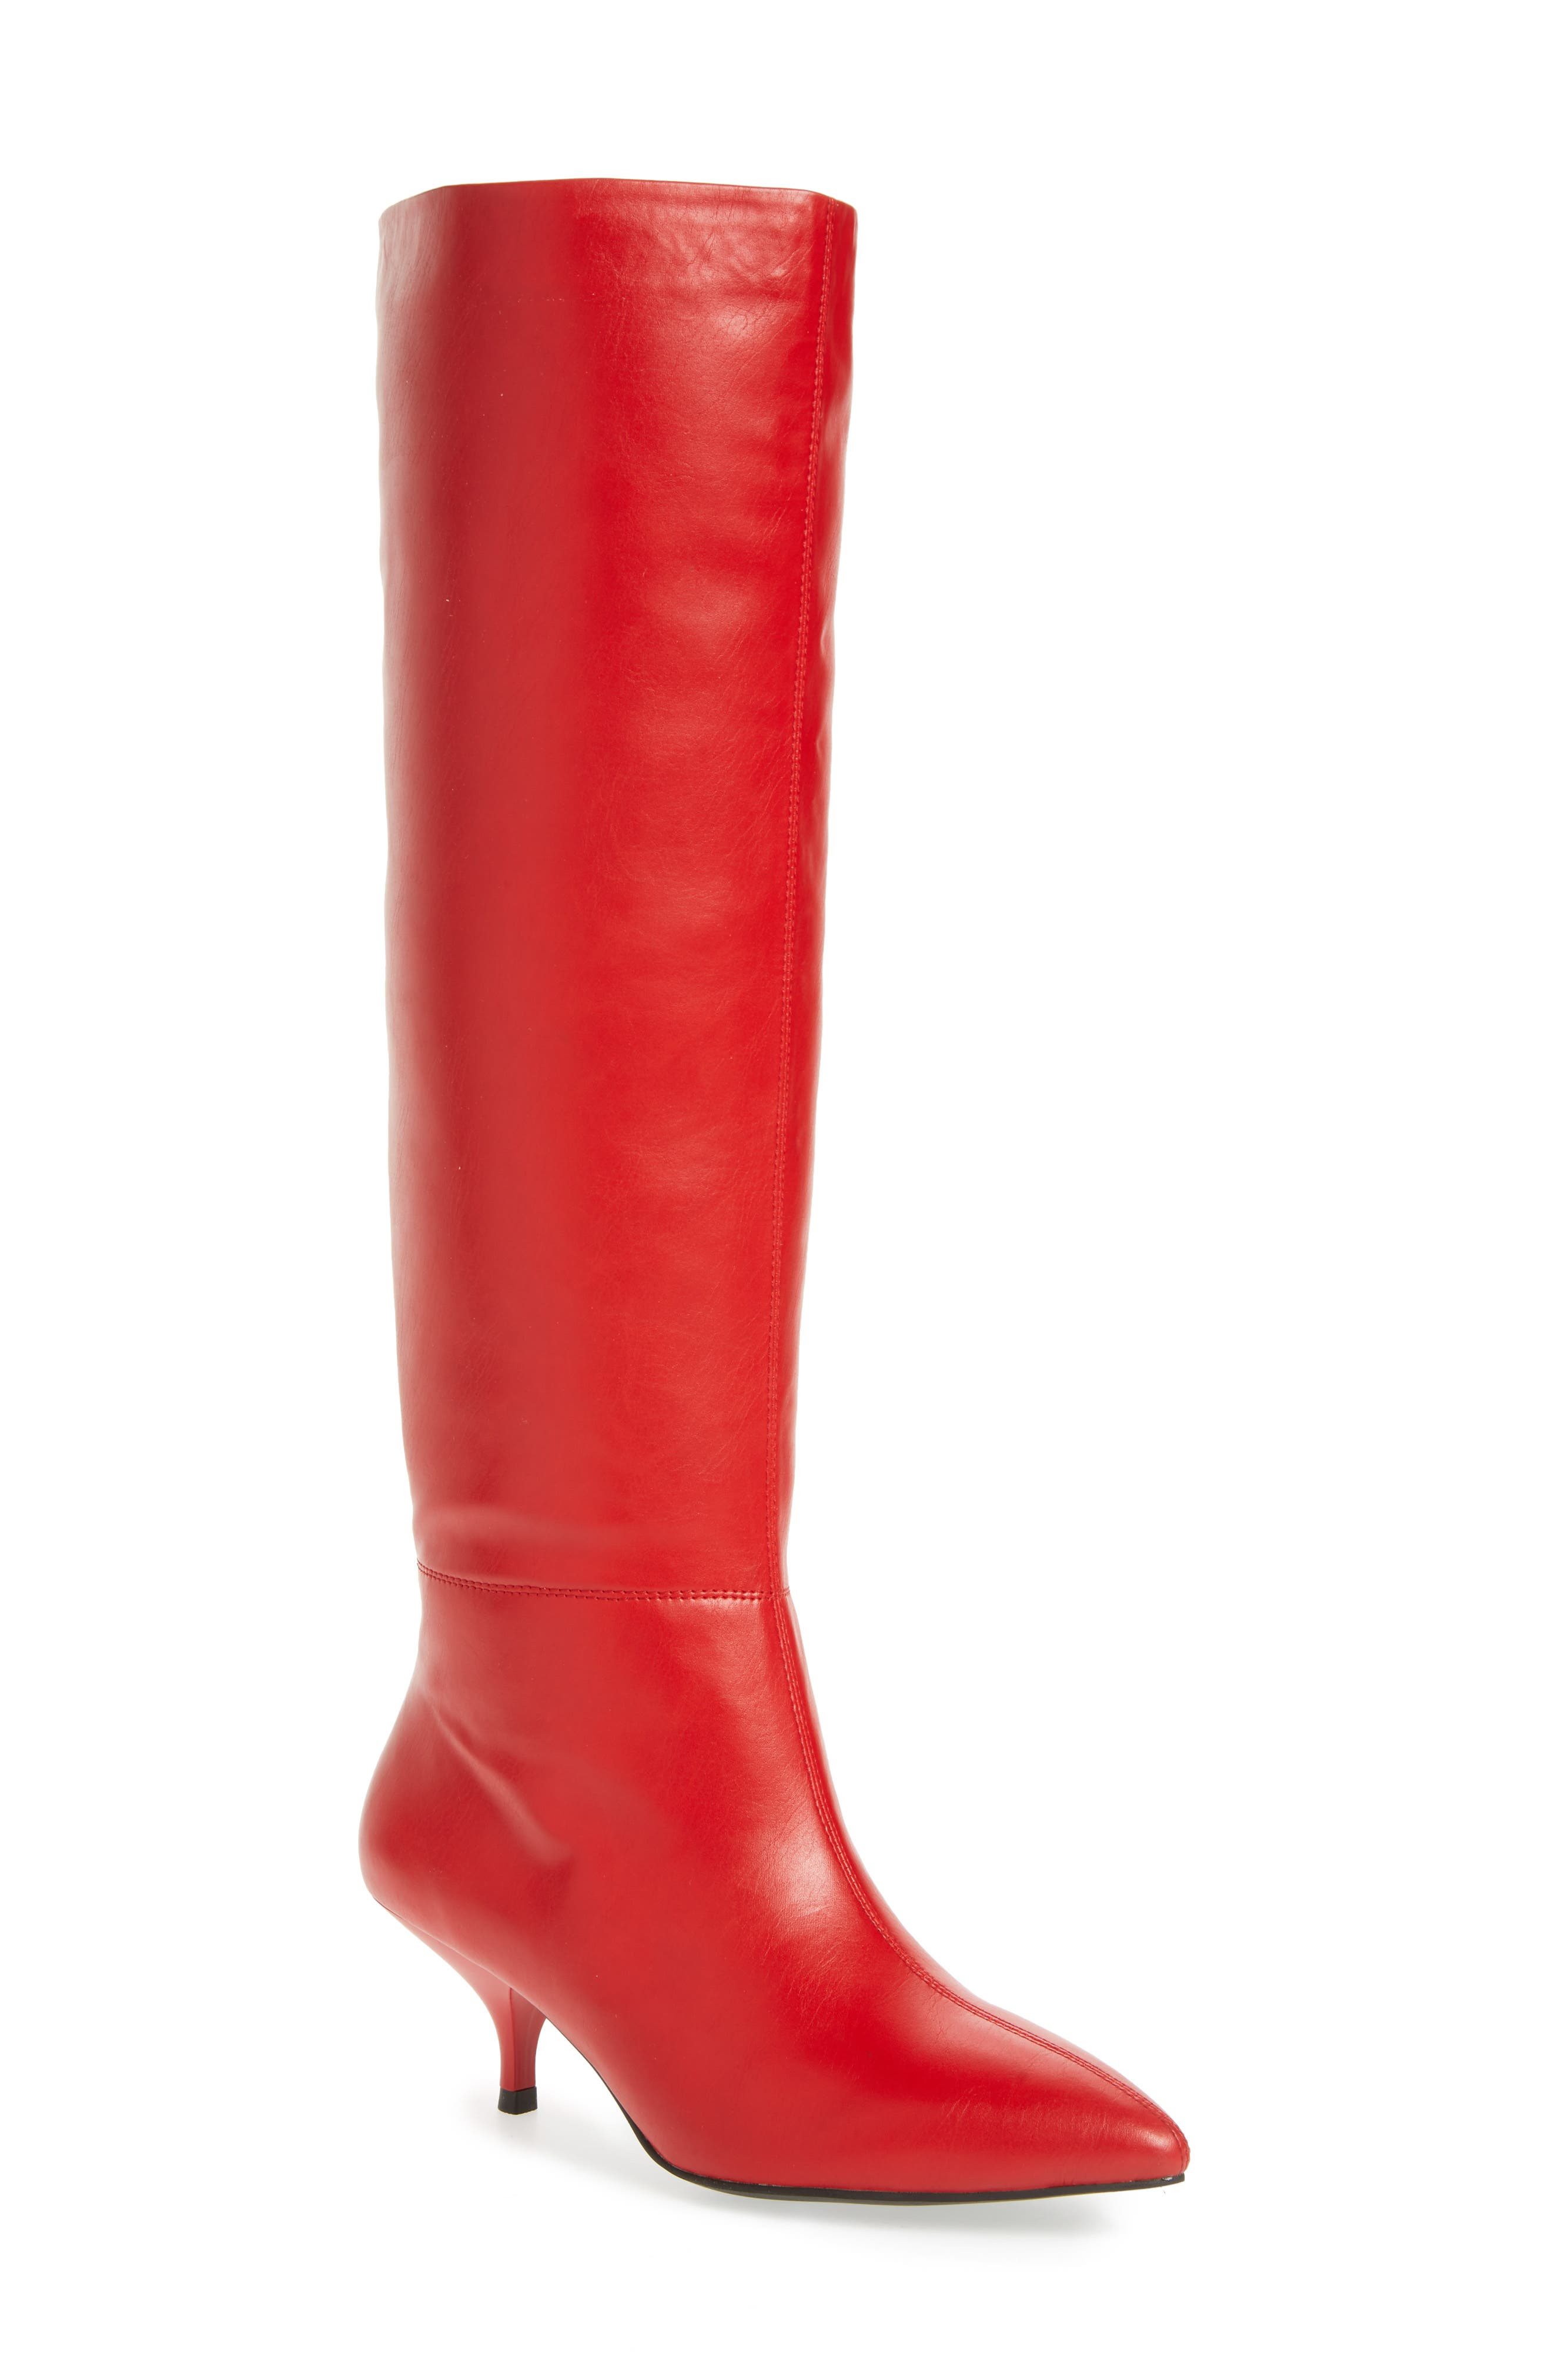 Germany Knee High Boot,                         Main,                         color, Red